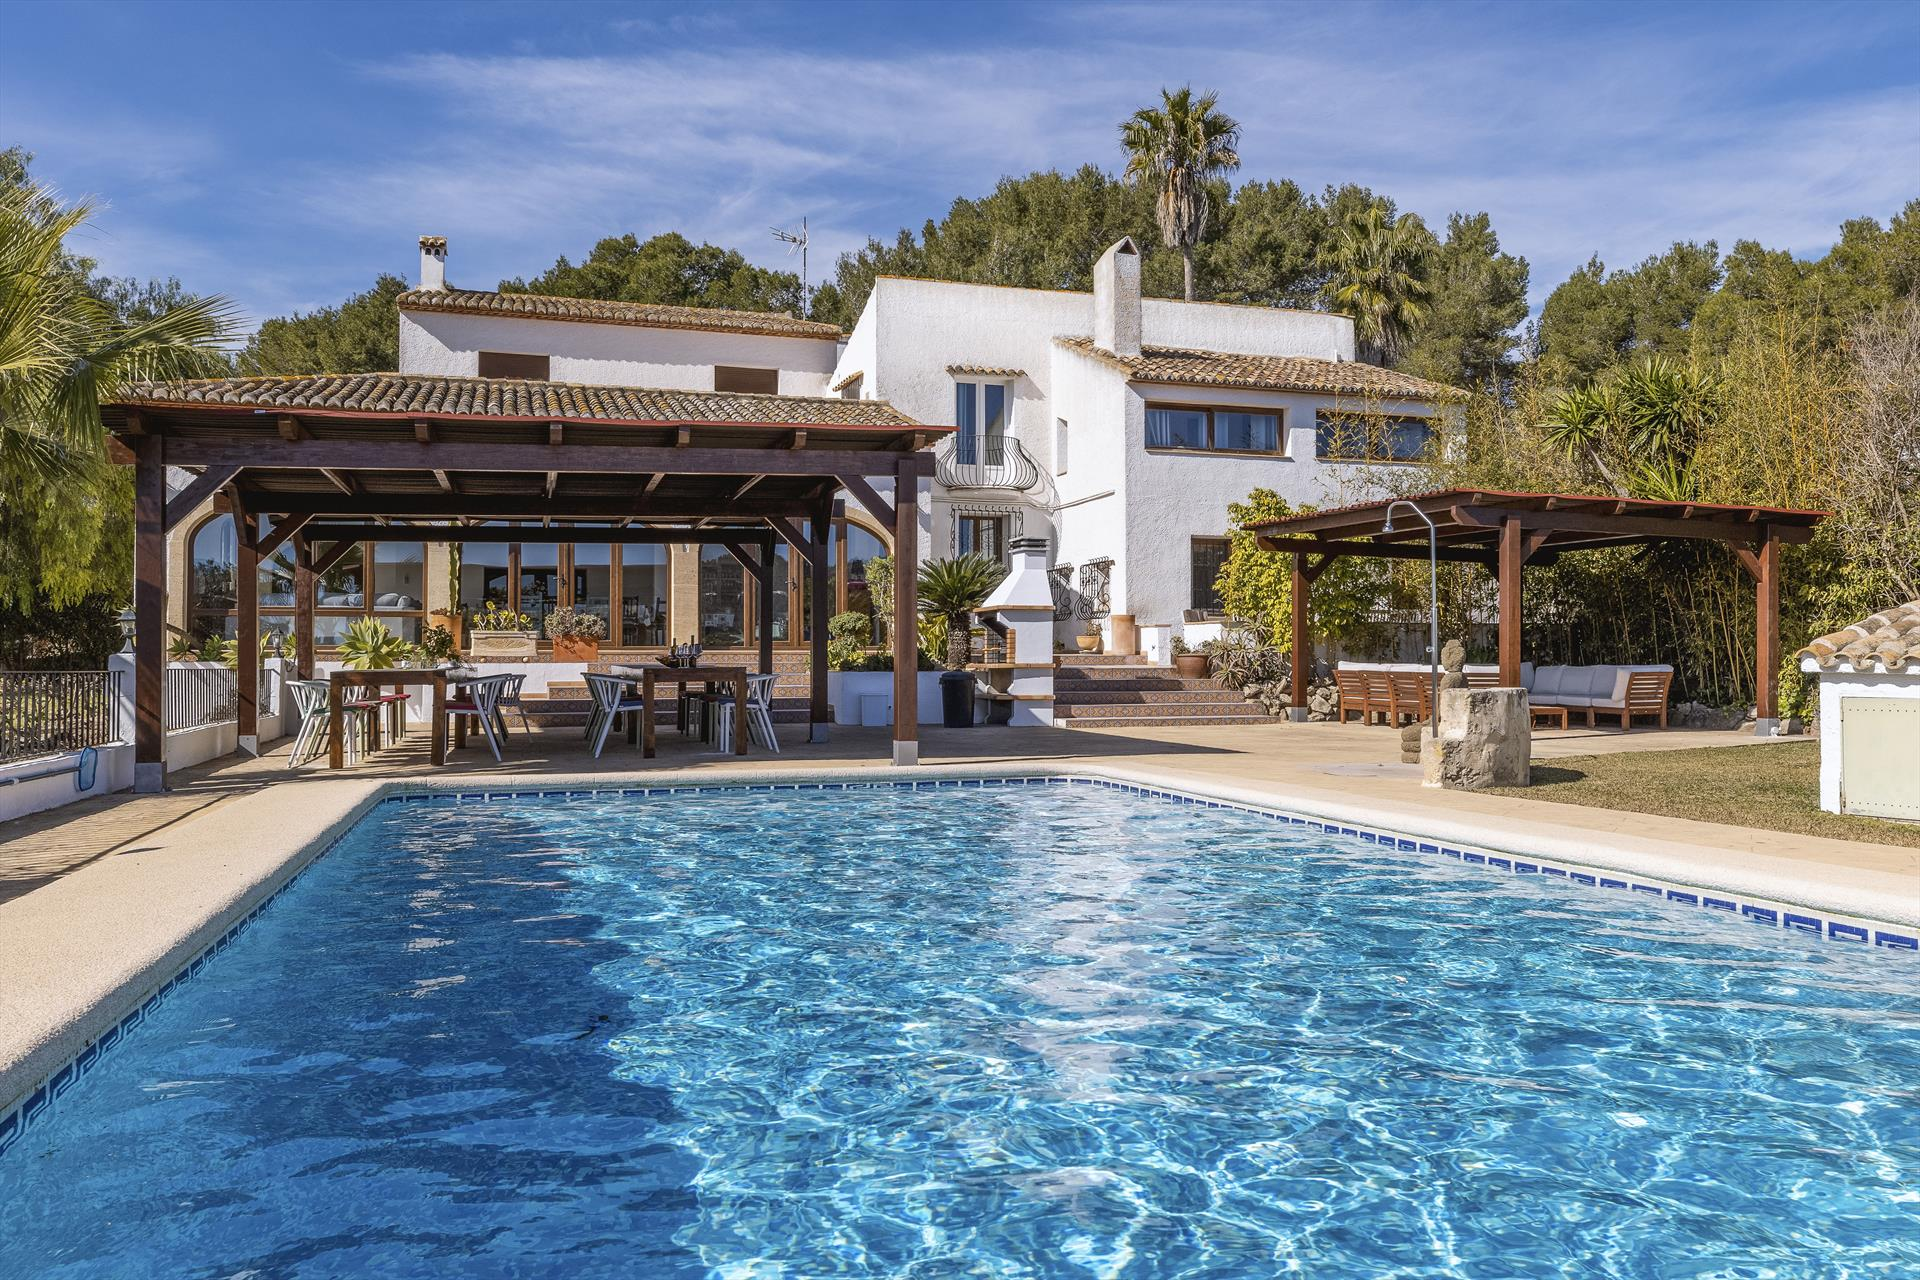 Casa Rosalia 22 pax, Holiday villa at the Costa Blanca for maximum 22 people.Beautifully renovated country house in Spain on two floors,.....